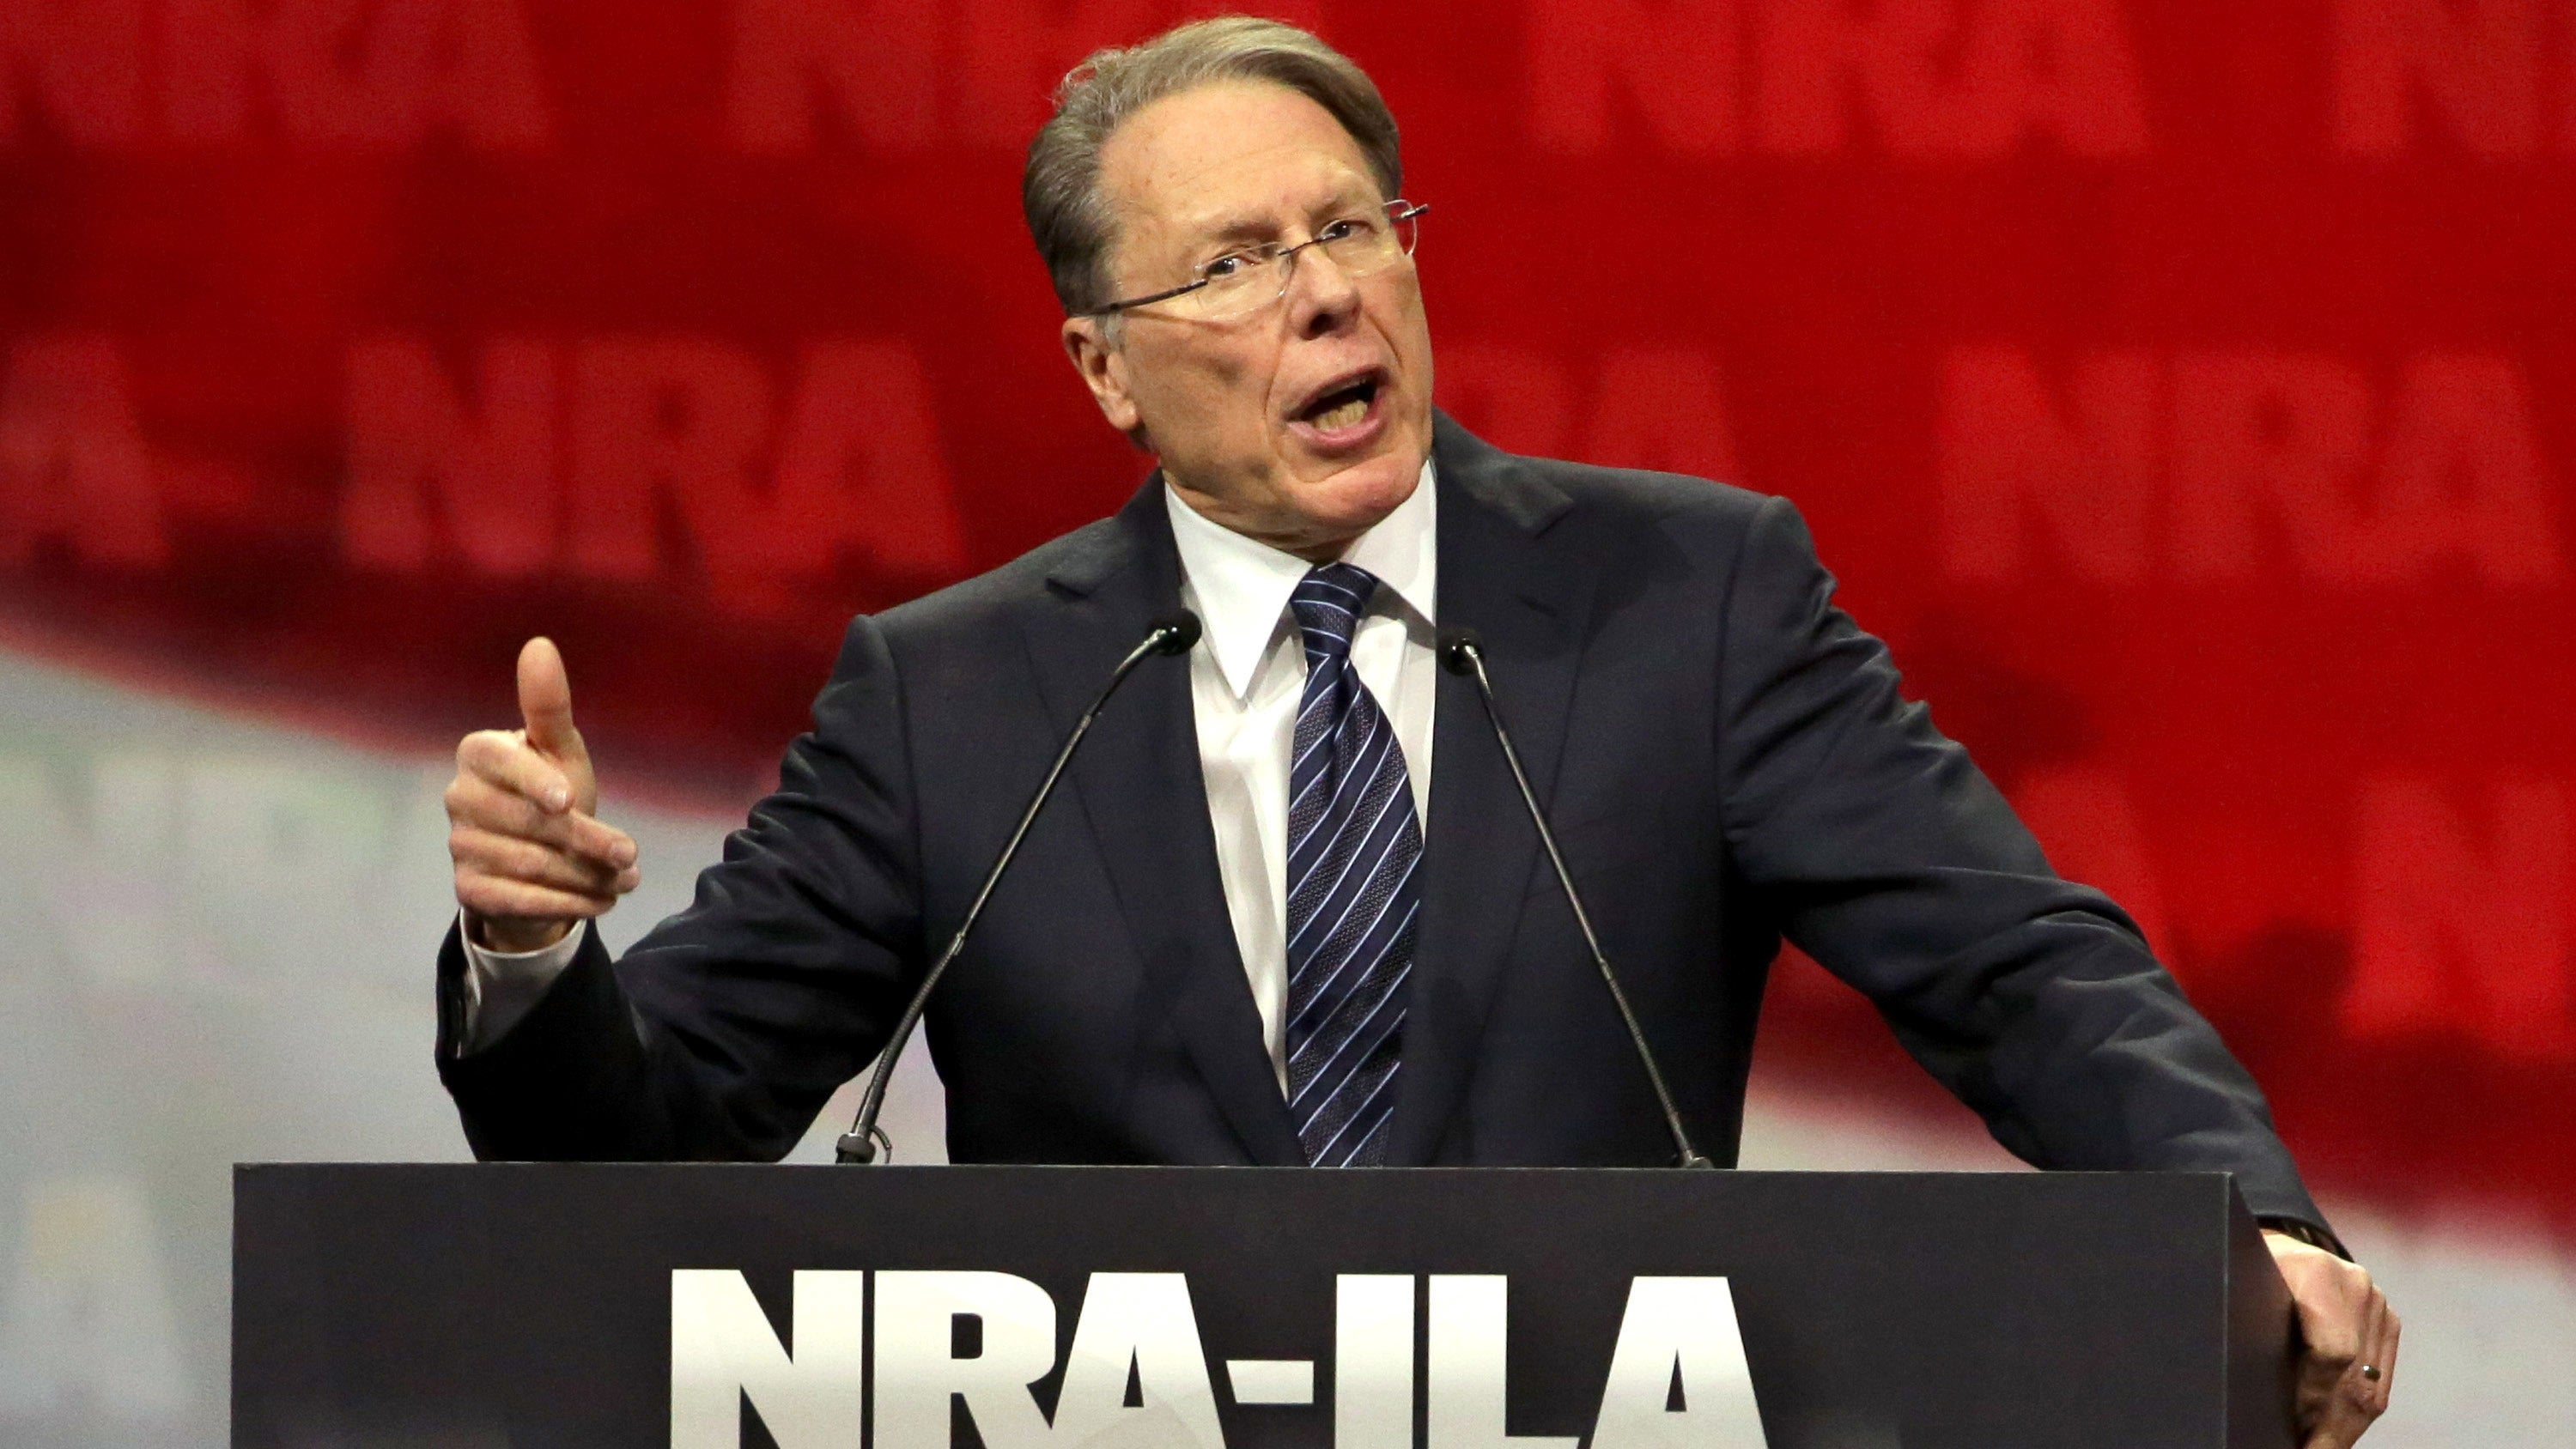 Symantec Cuts Ties With NRA Amid Backlash Over School Shootings